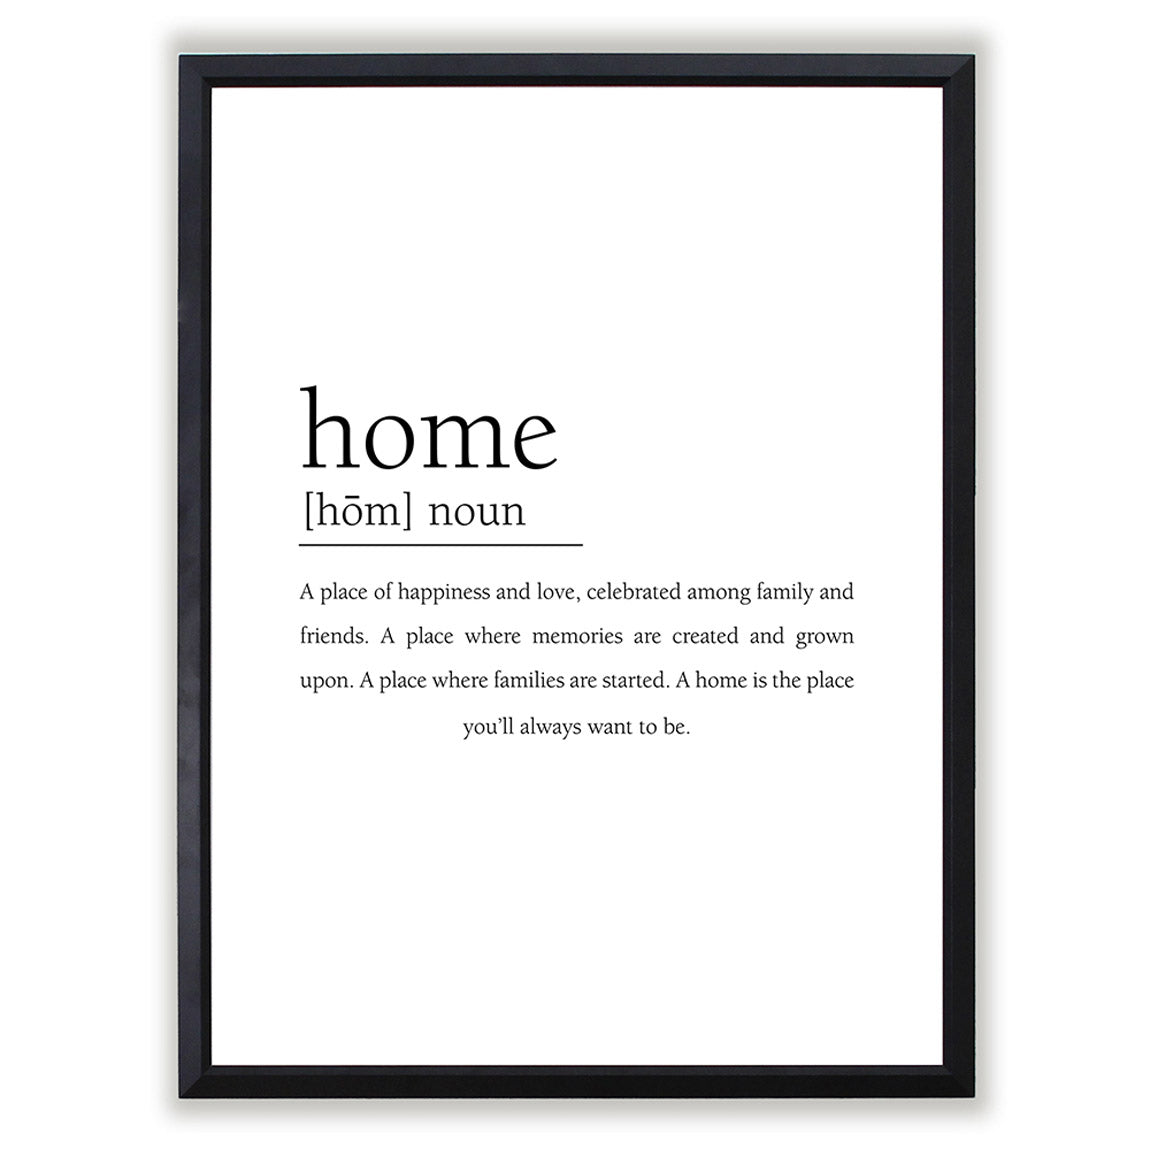 Home Definition Framed Art Print Comes In Multiple Sizes And Colors or Colored Frames